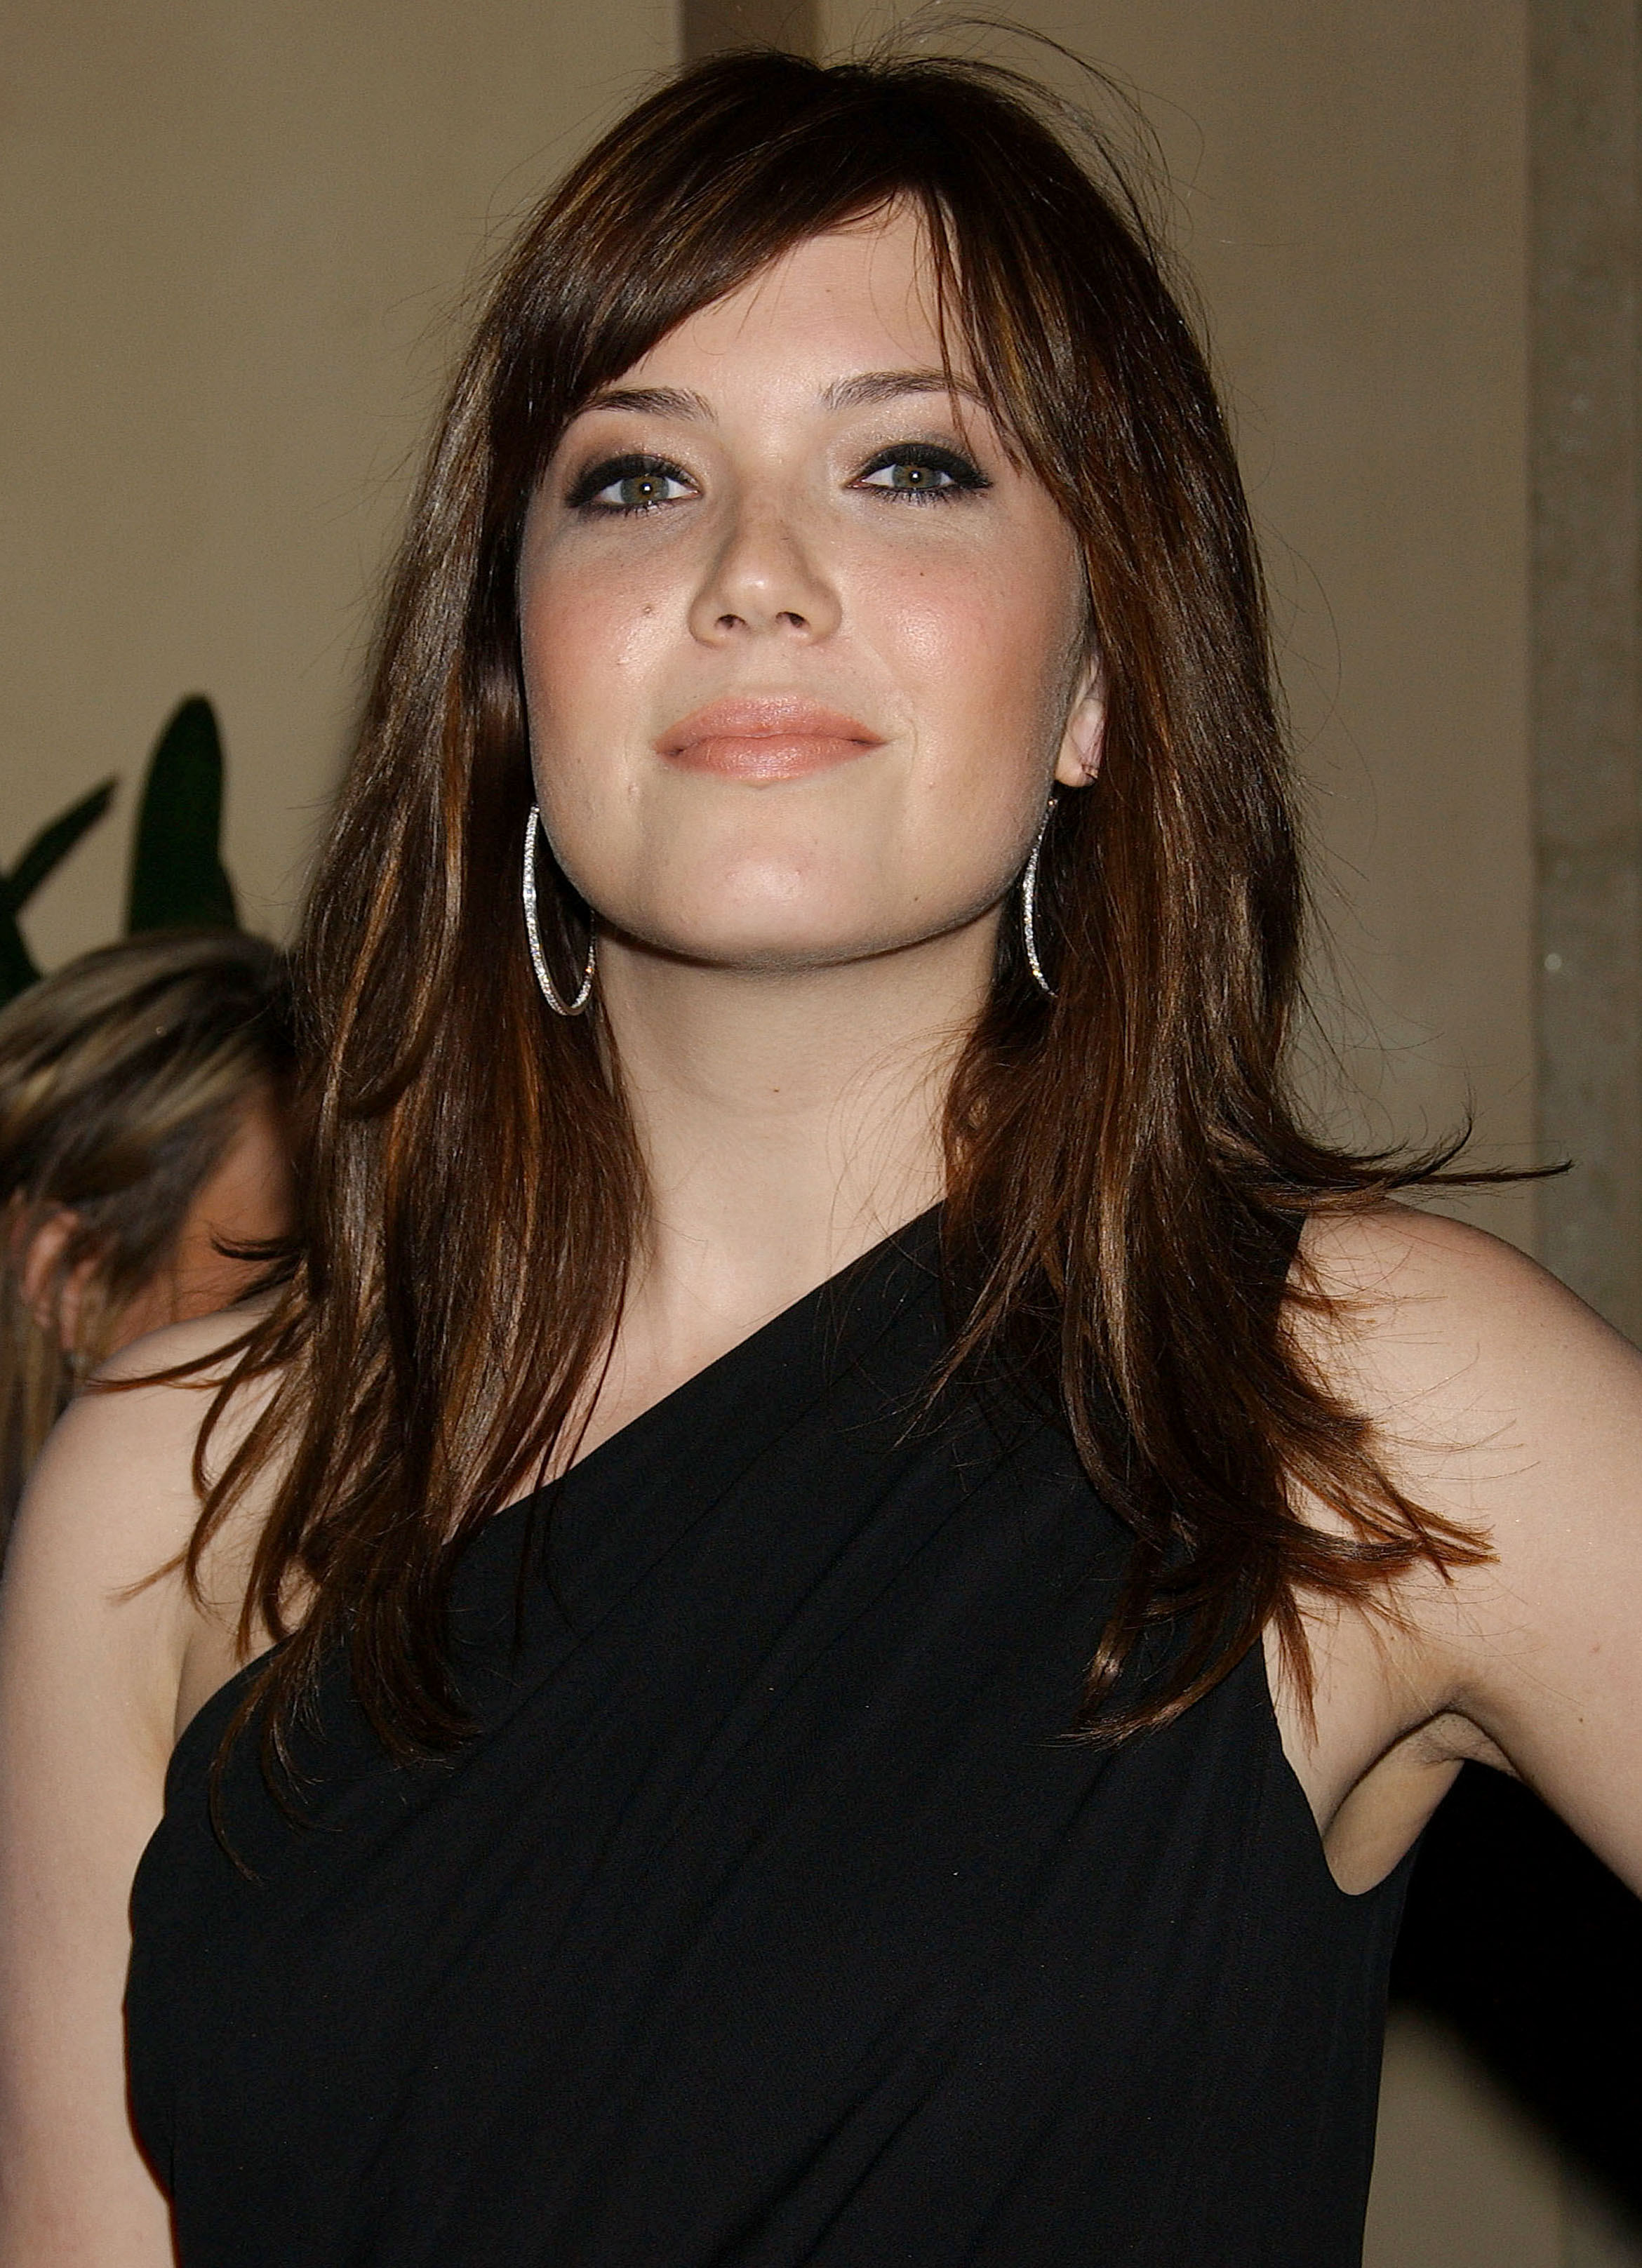 Mandy moore Wallpaper 3 With 2340 x 3232 Resolution ( 935kB )